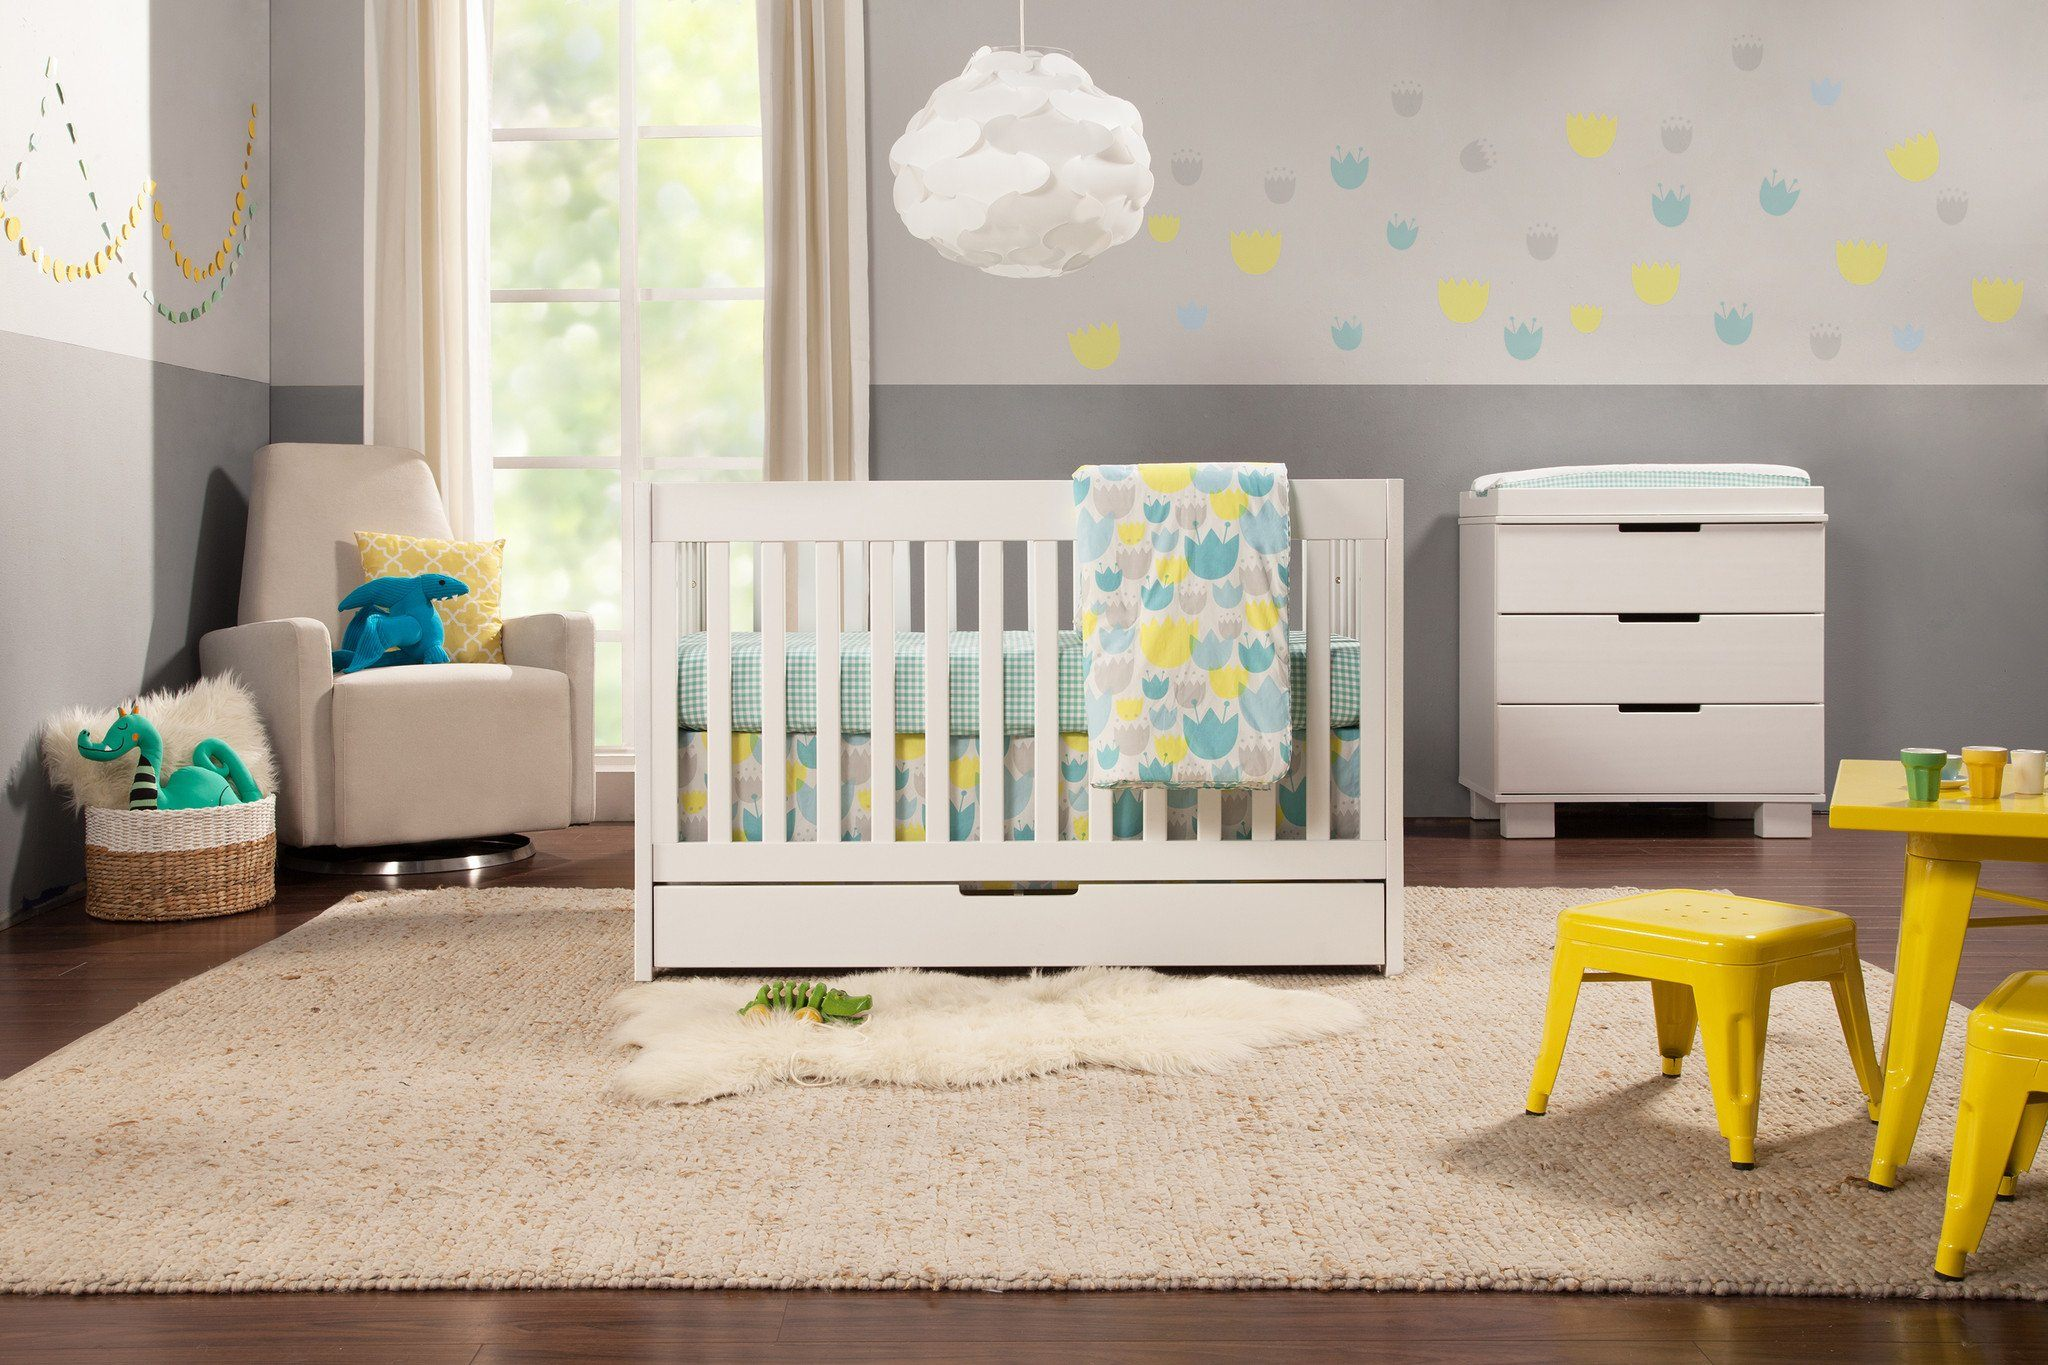 Mercer 3-in-1 Convertible Crib with Toddler Bed Conversion Kit ...